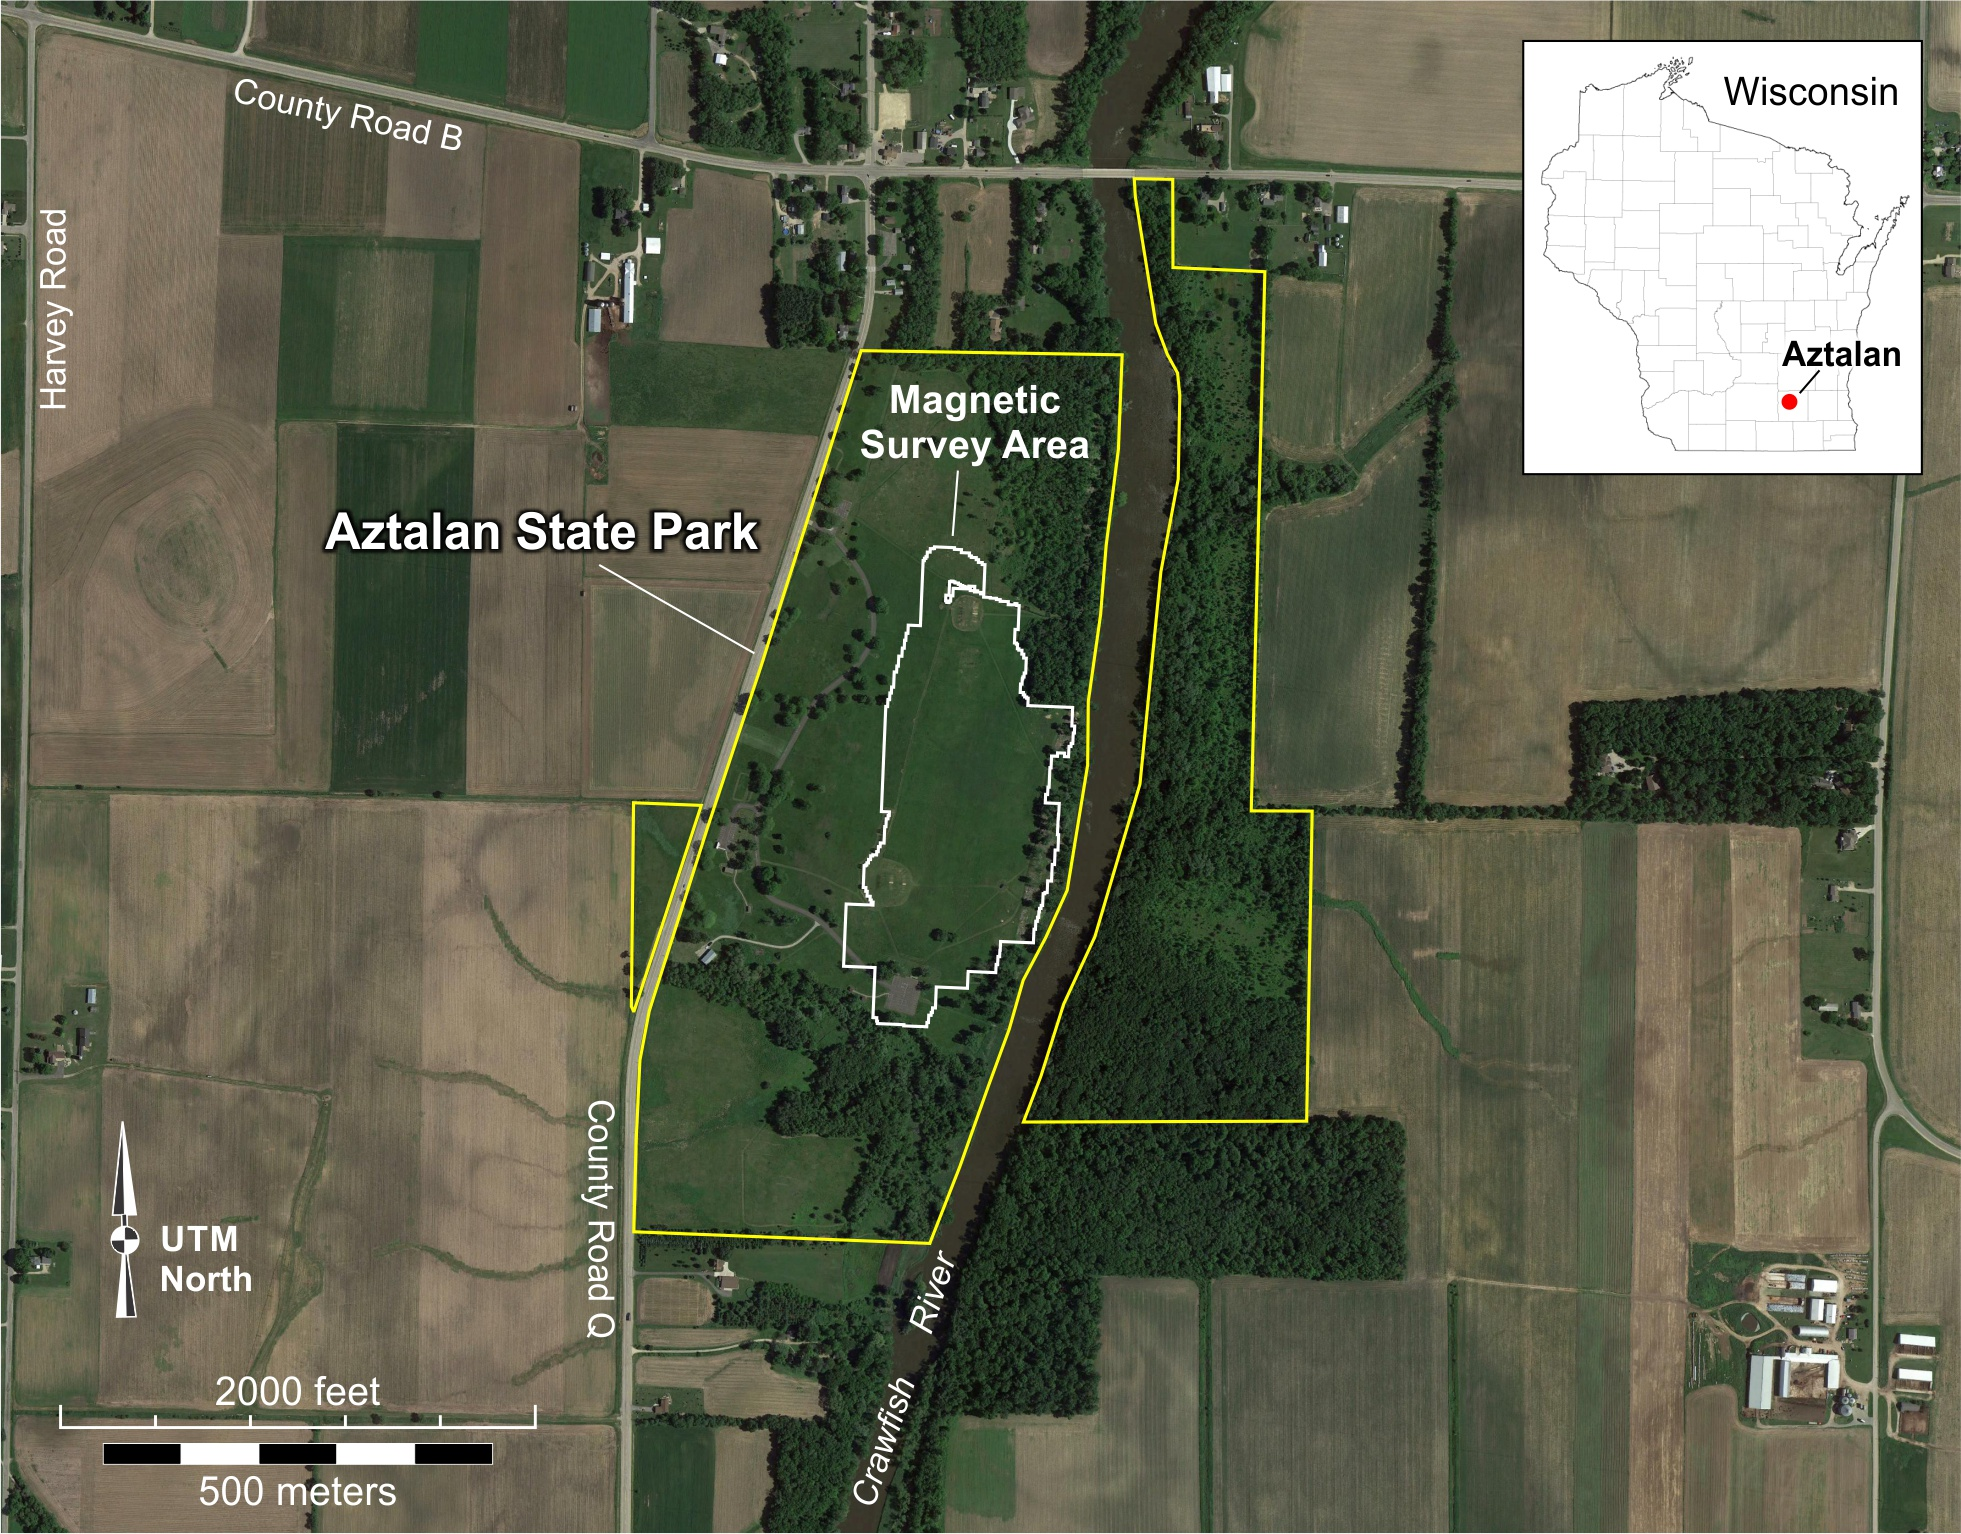 Figure 1. Geophysical survey area at Aztalan State Park